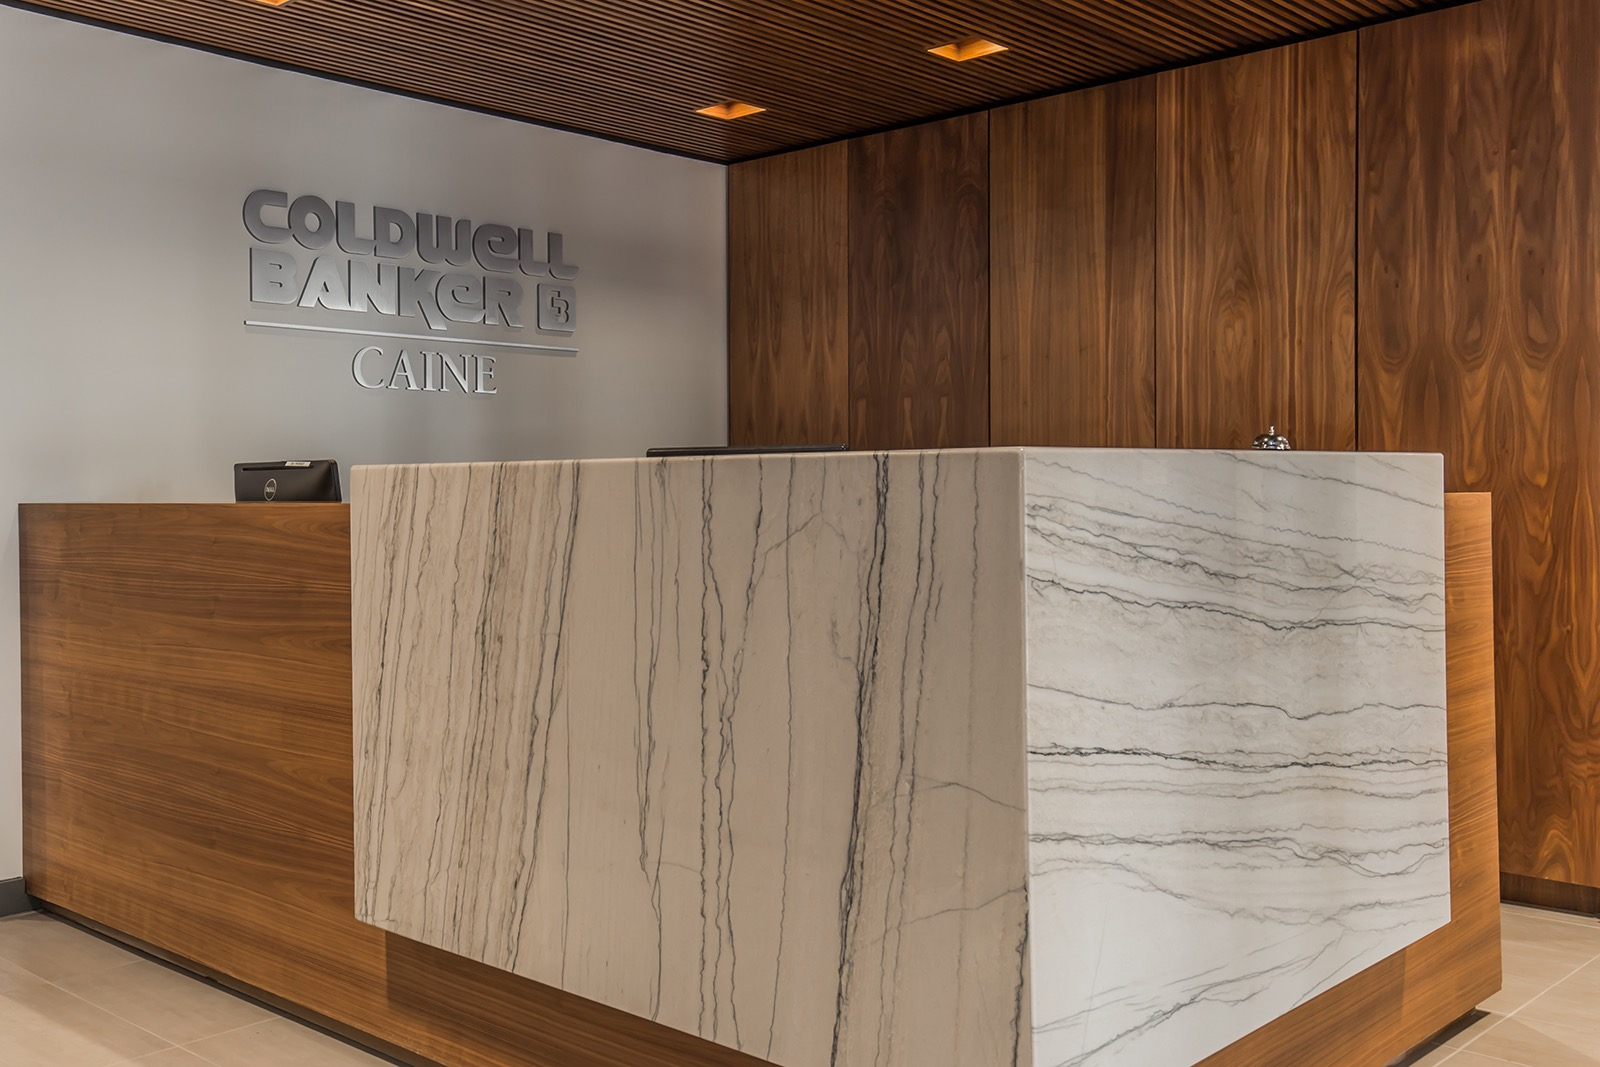 coldwell-bank-office-3